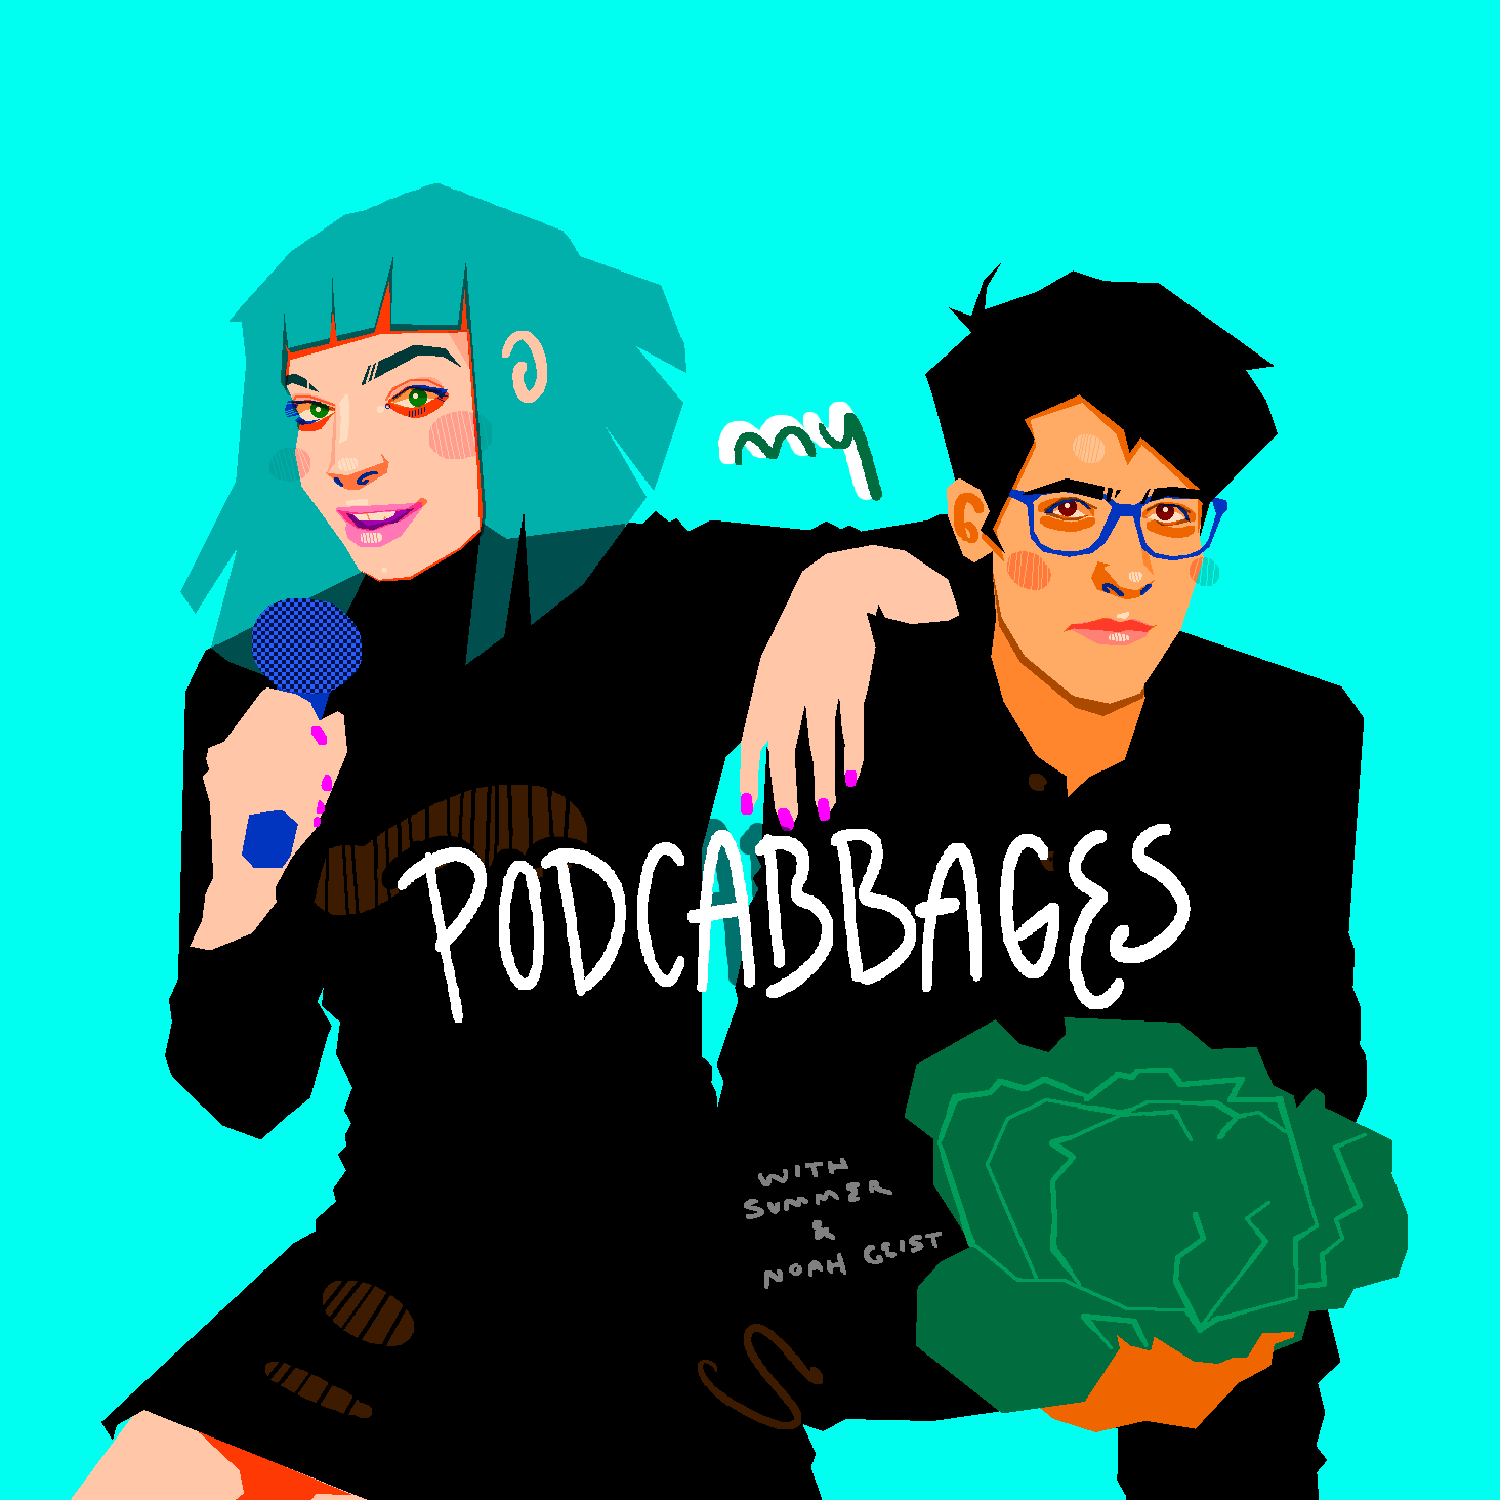 My Podcabbages